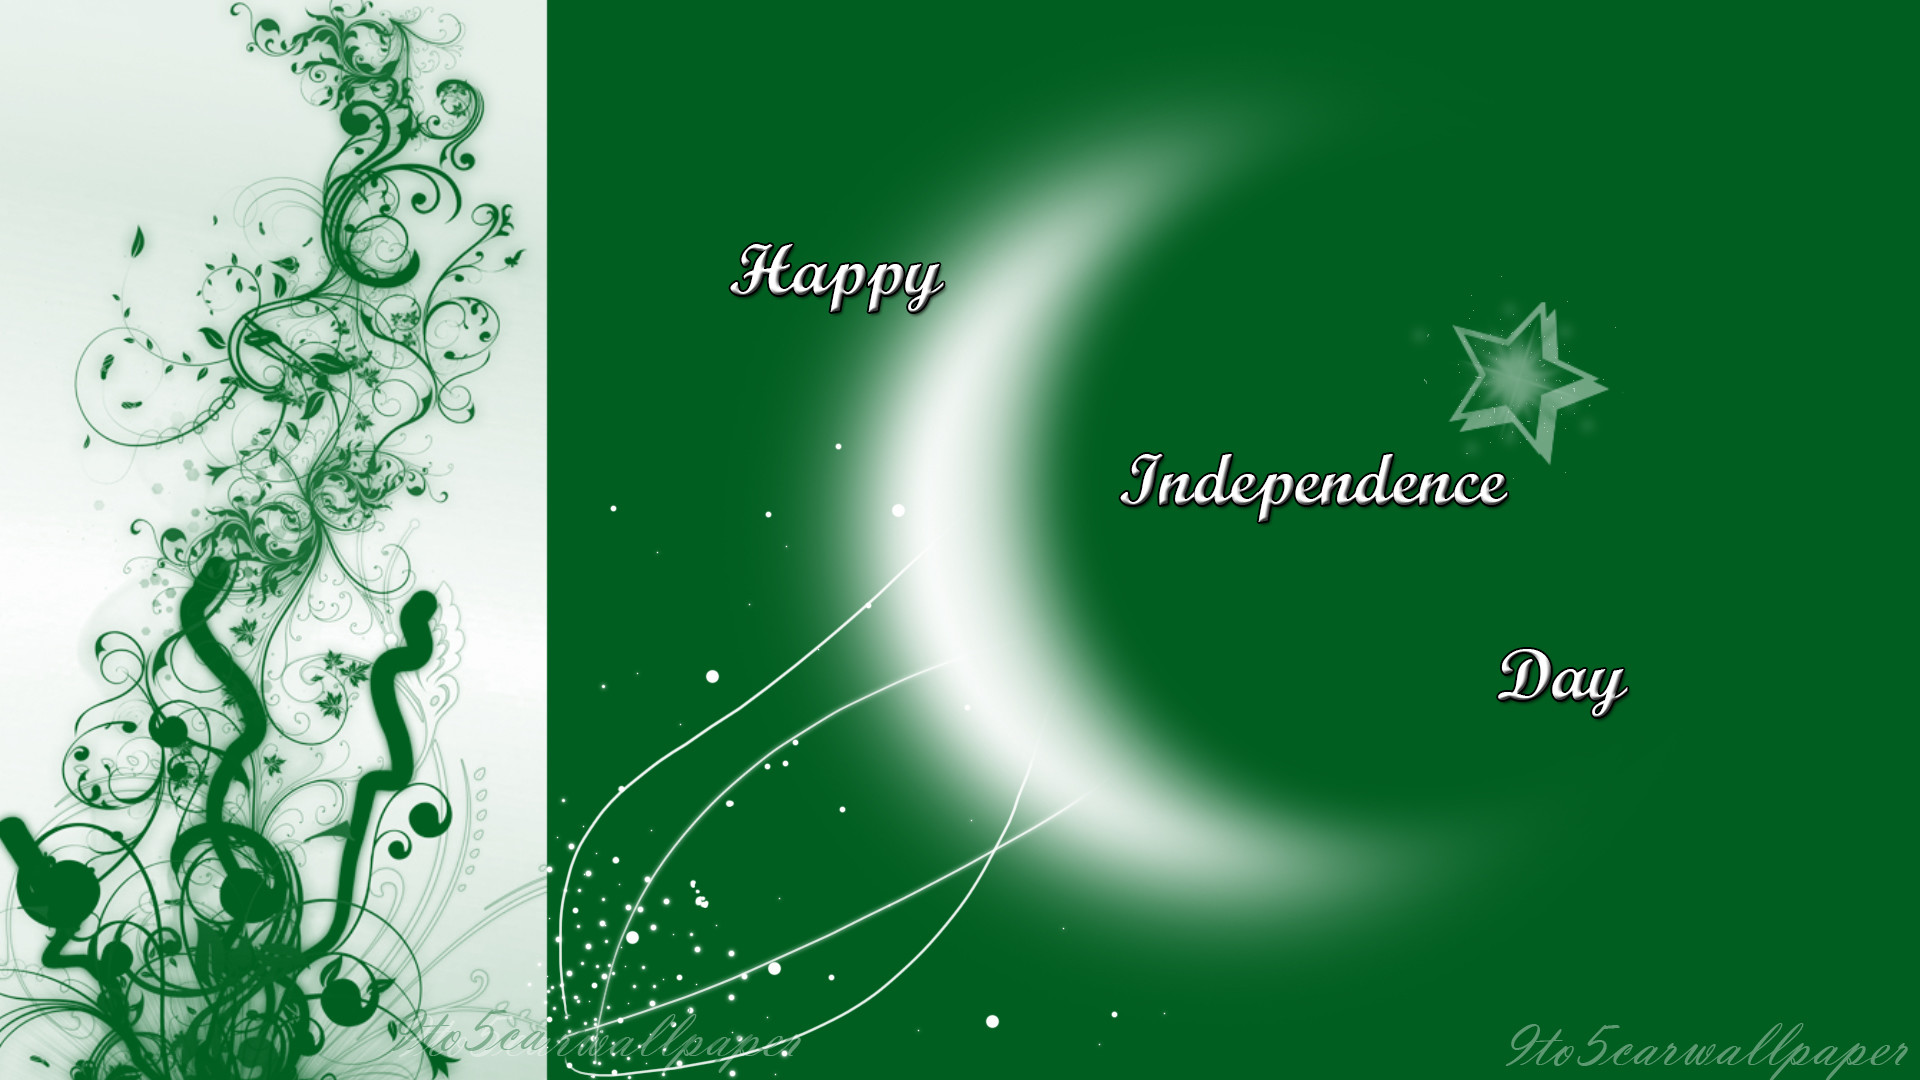 1920x1080 Latest Pics Of Pakistan Flag, Images & wallpapers 2017  happy-independence-day-hd-wallpapers-images-2017